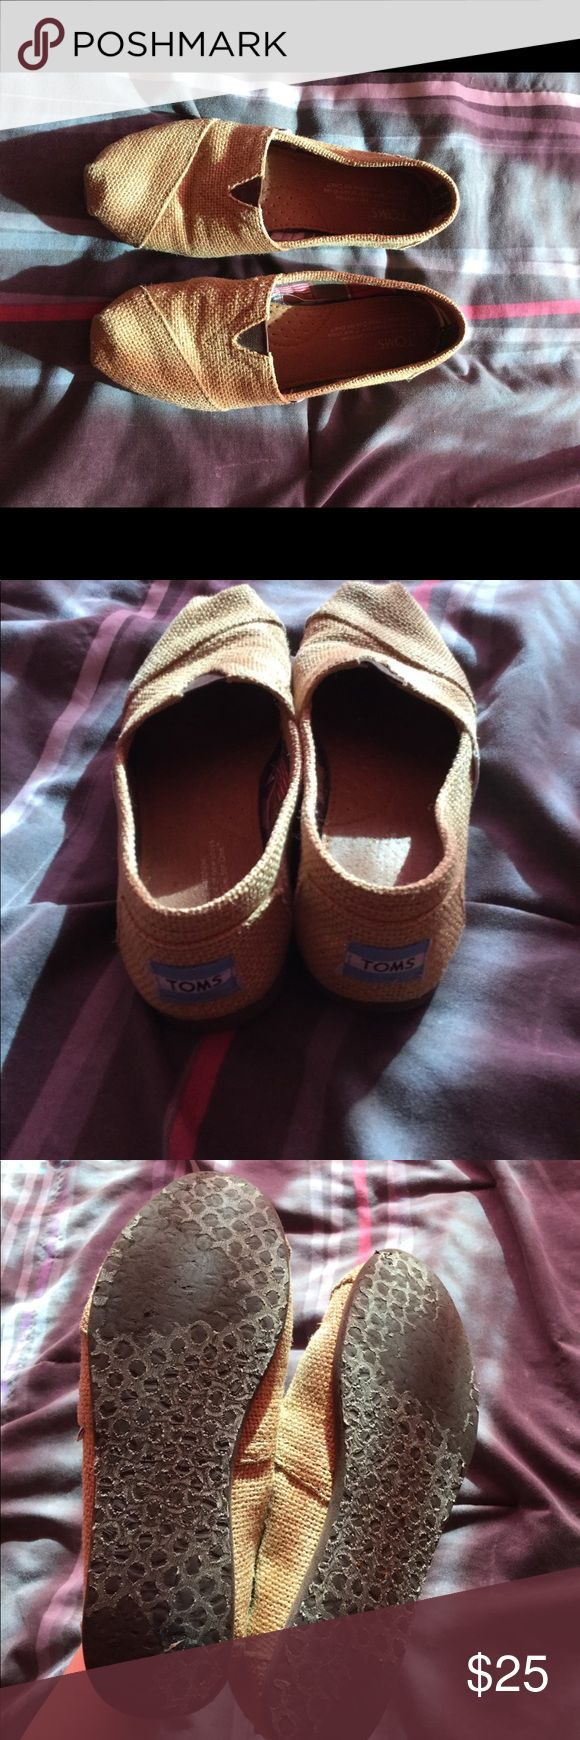 Burlap toms In good condition normal wear on the bottom Toms Shoes Flats & Loafers